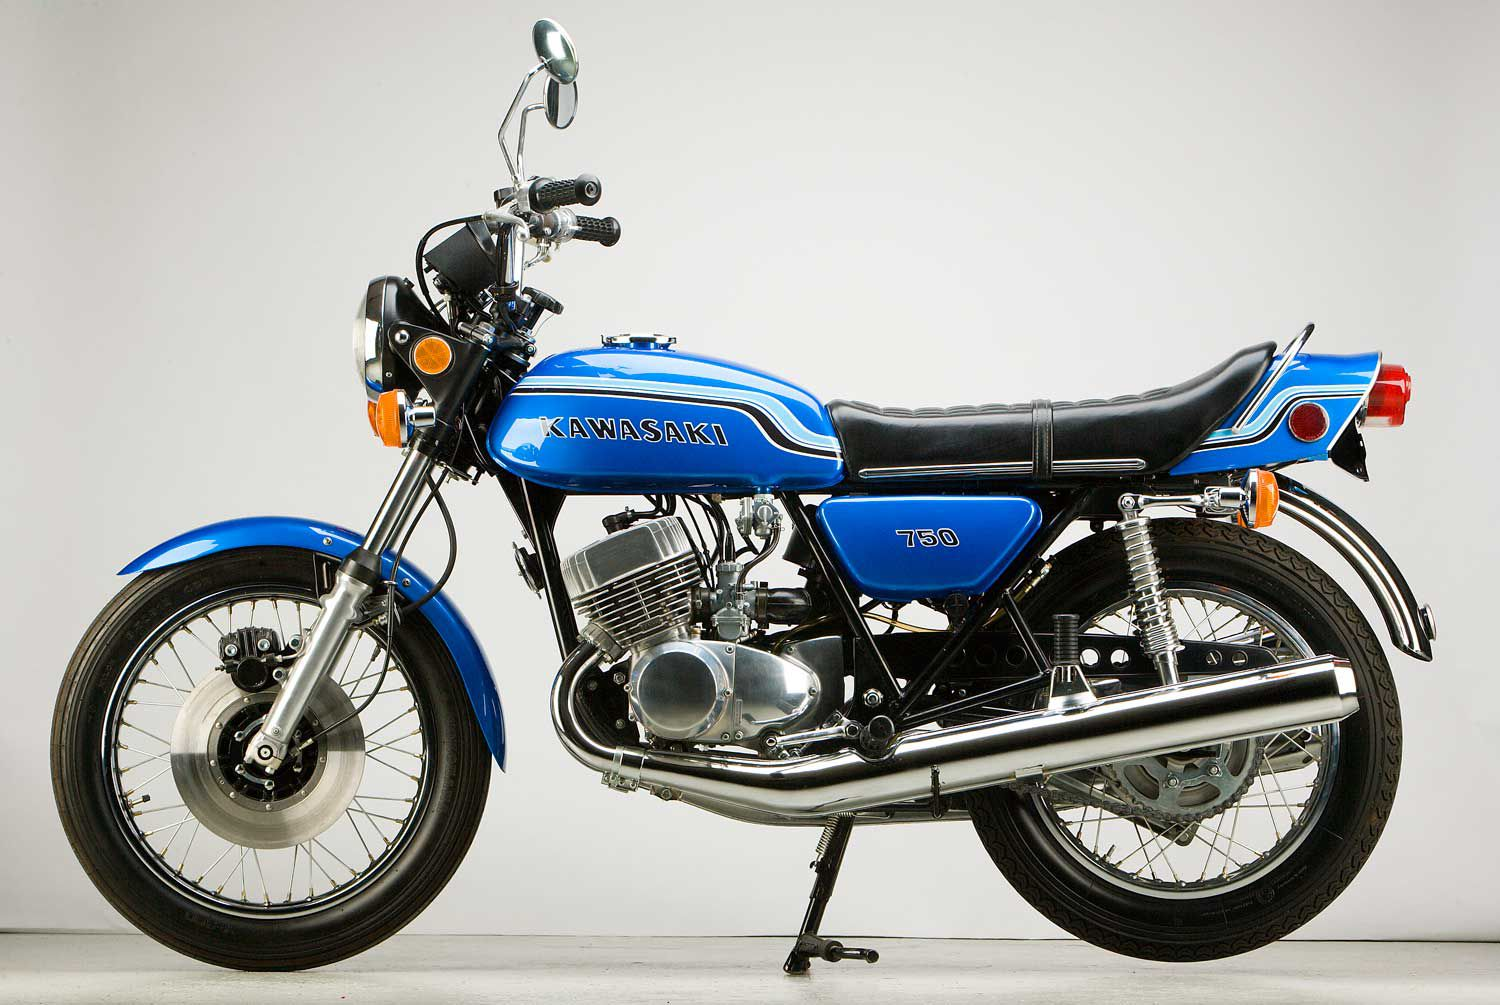 Boom! Here Comes the 1972 Kawasaki Mach IV 750 | Cycle World